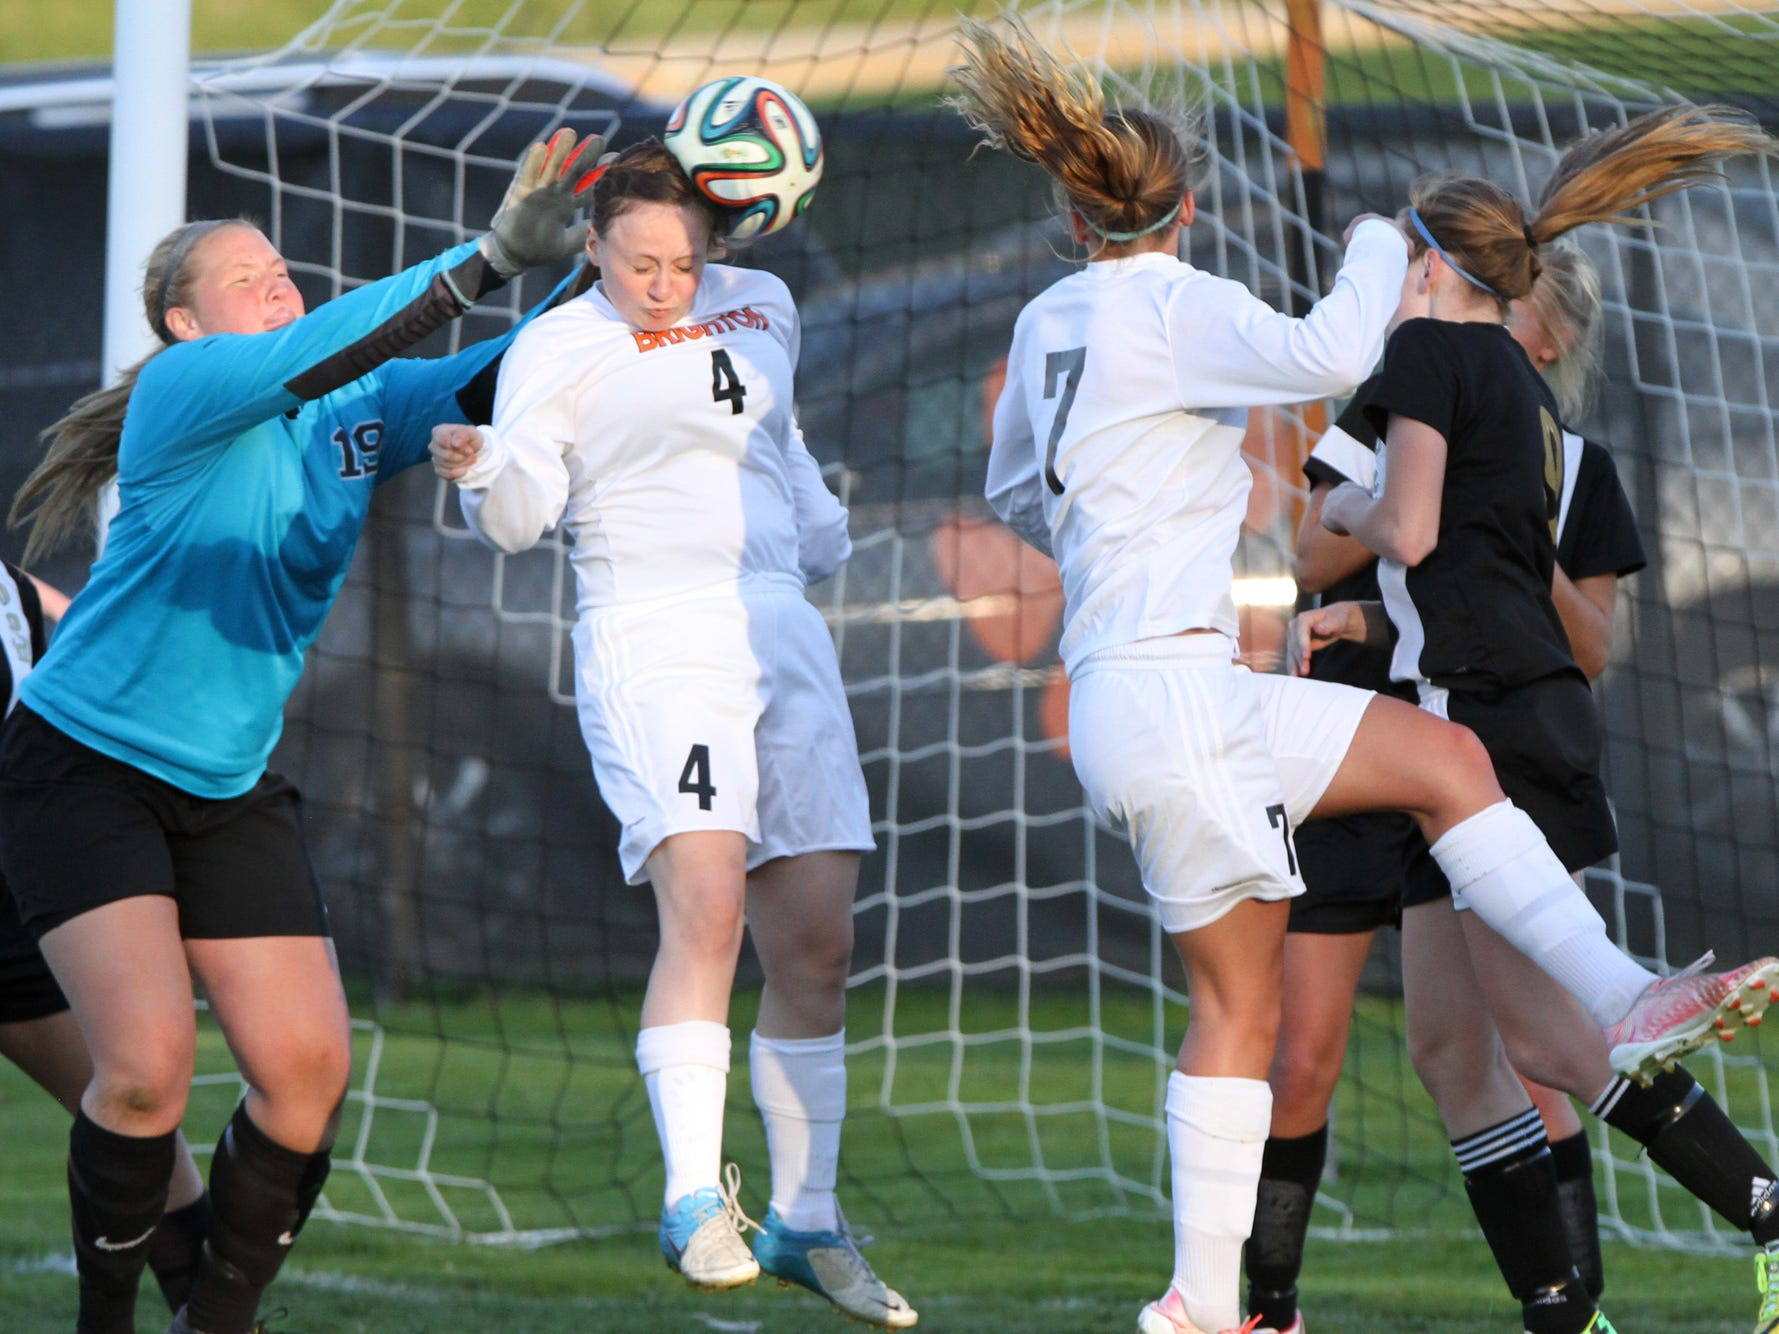 Brighton's Mackenzie Roggenkamp nets the game's first goal against Howell with a header off a corner kick.